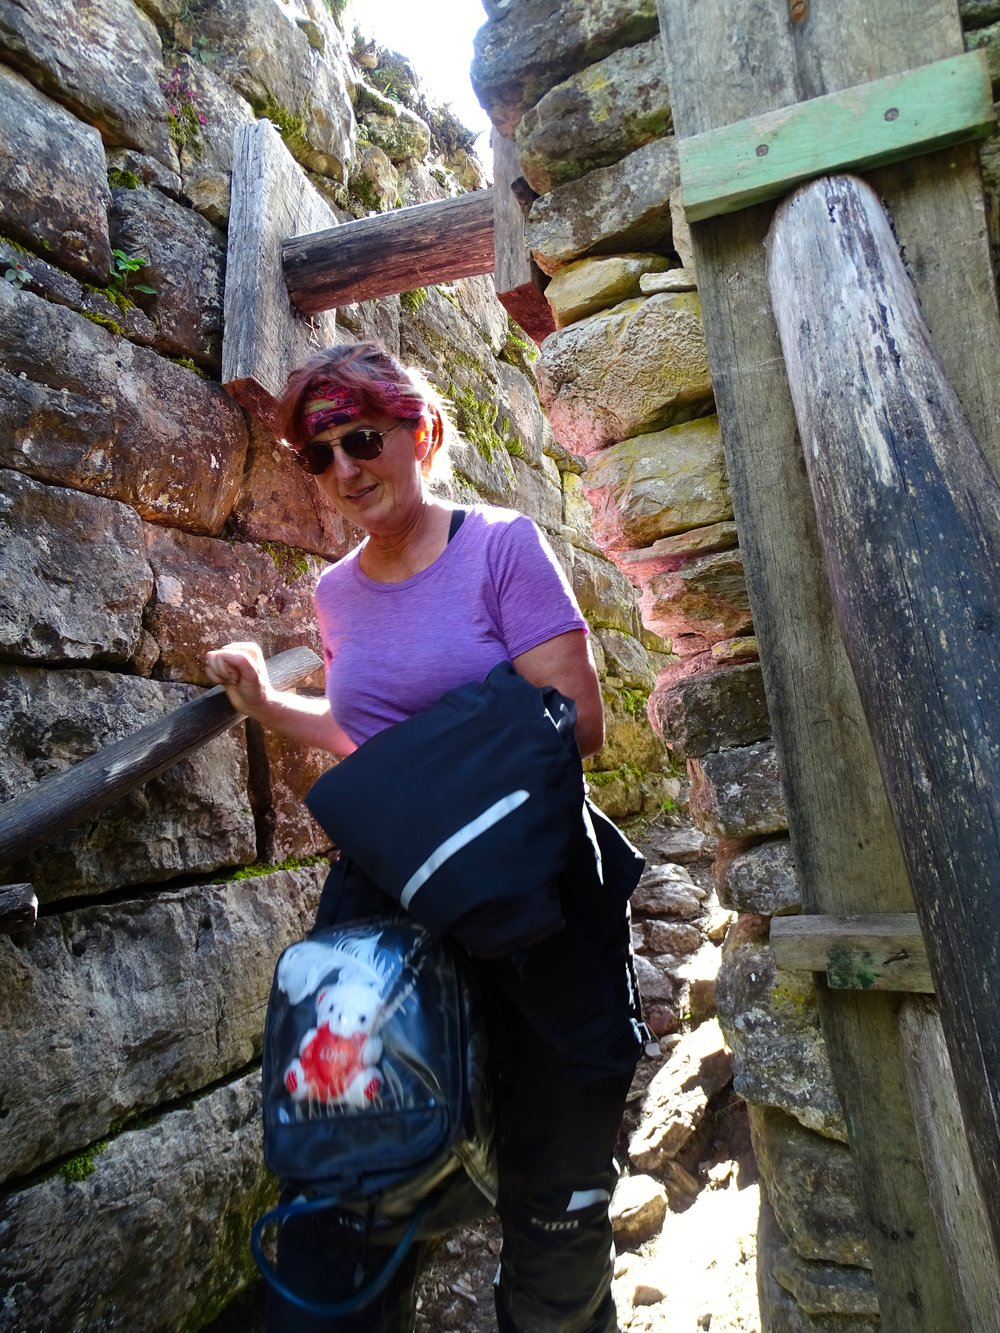 The entrance to the topmost level was much narrower, easy for Jalene but I had to turn my shoulders as I went up. Stone steps were tall, uneven, and somewhat difficult.